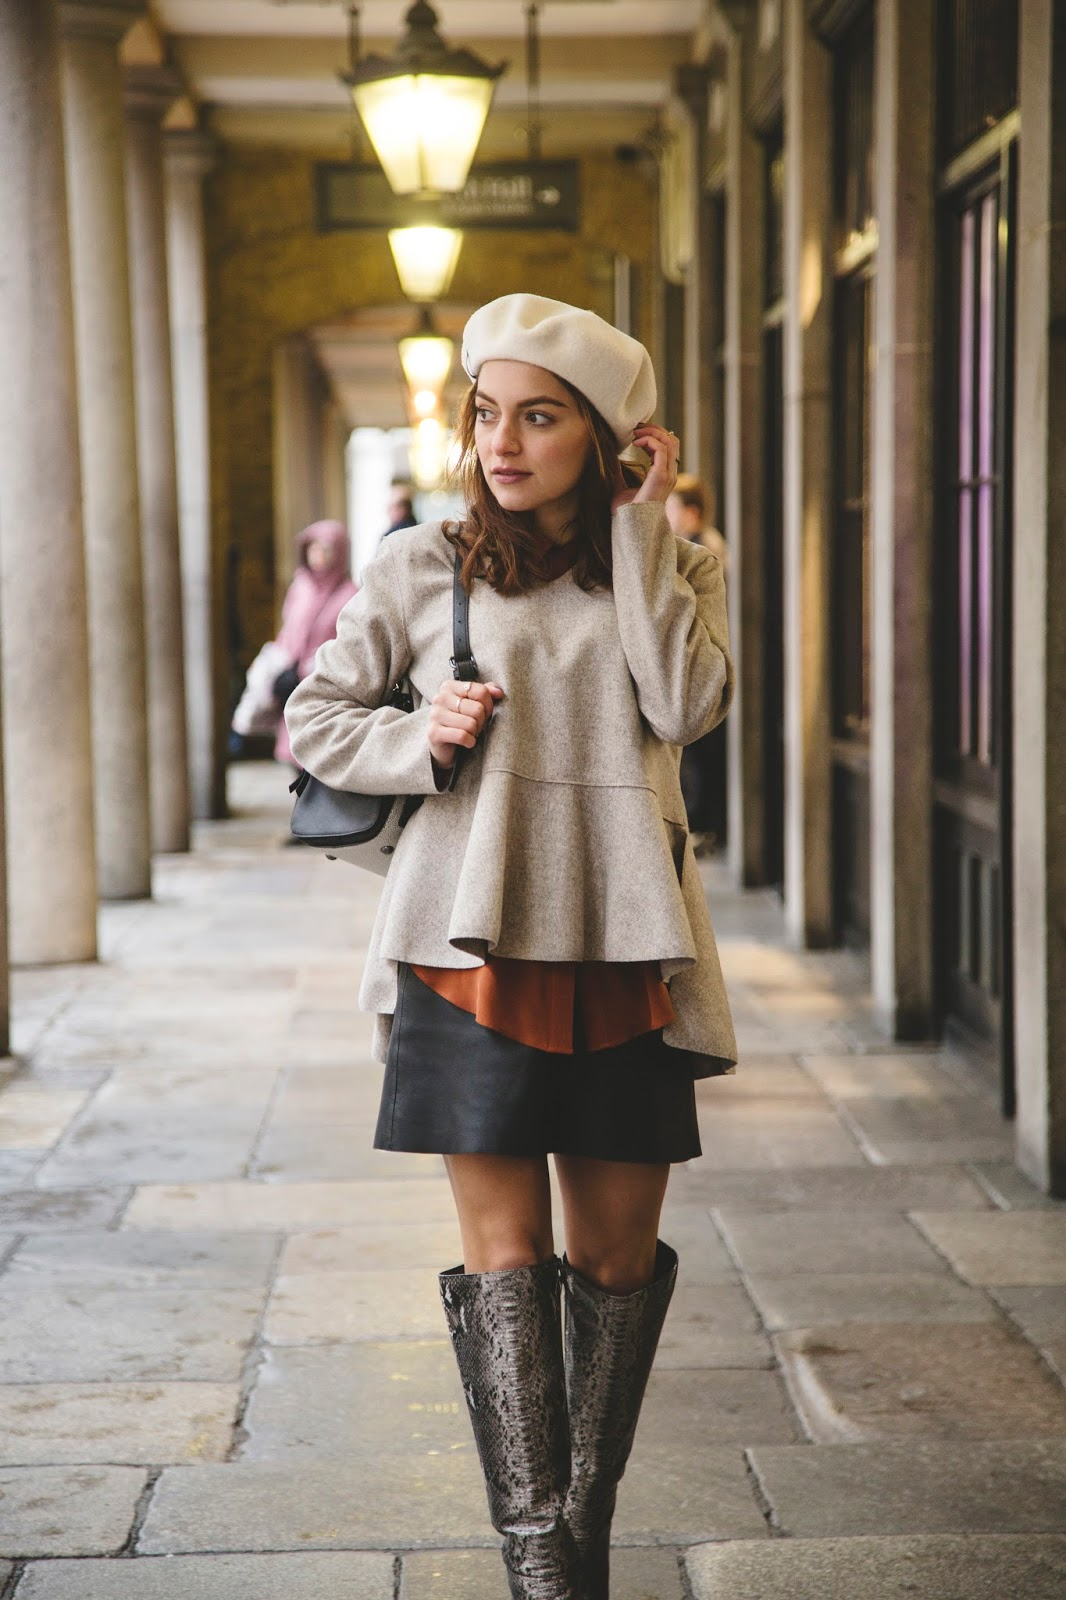 Whitney s Wonderland UK Luxe Fashion Blogger shares her tips on How to Style  a Beret. e00f0ecdfc8